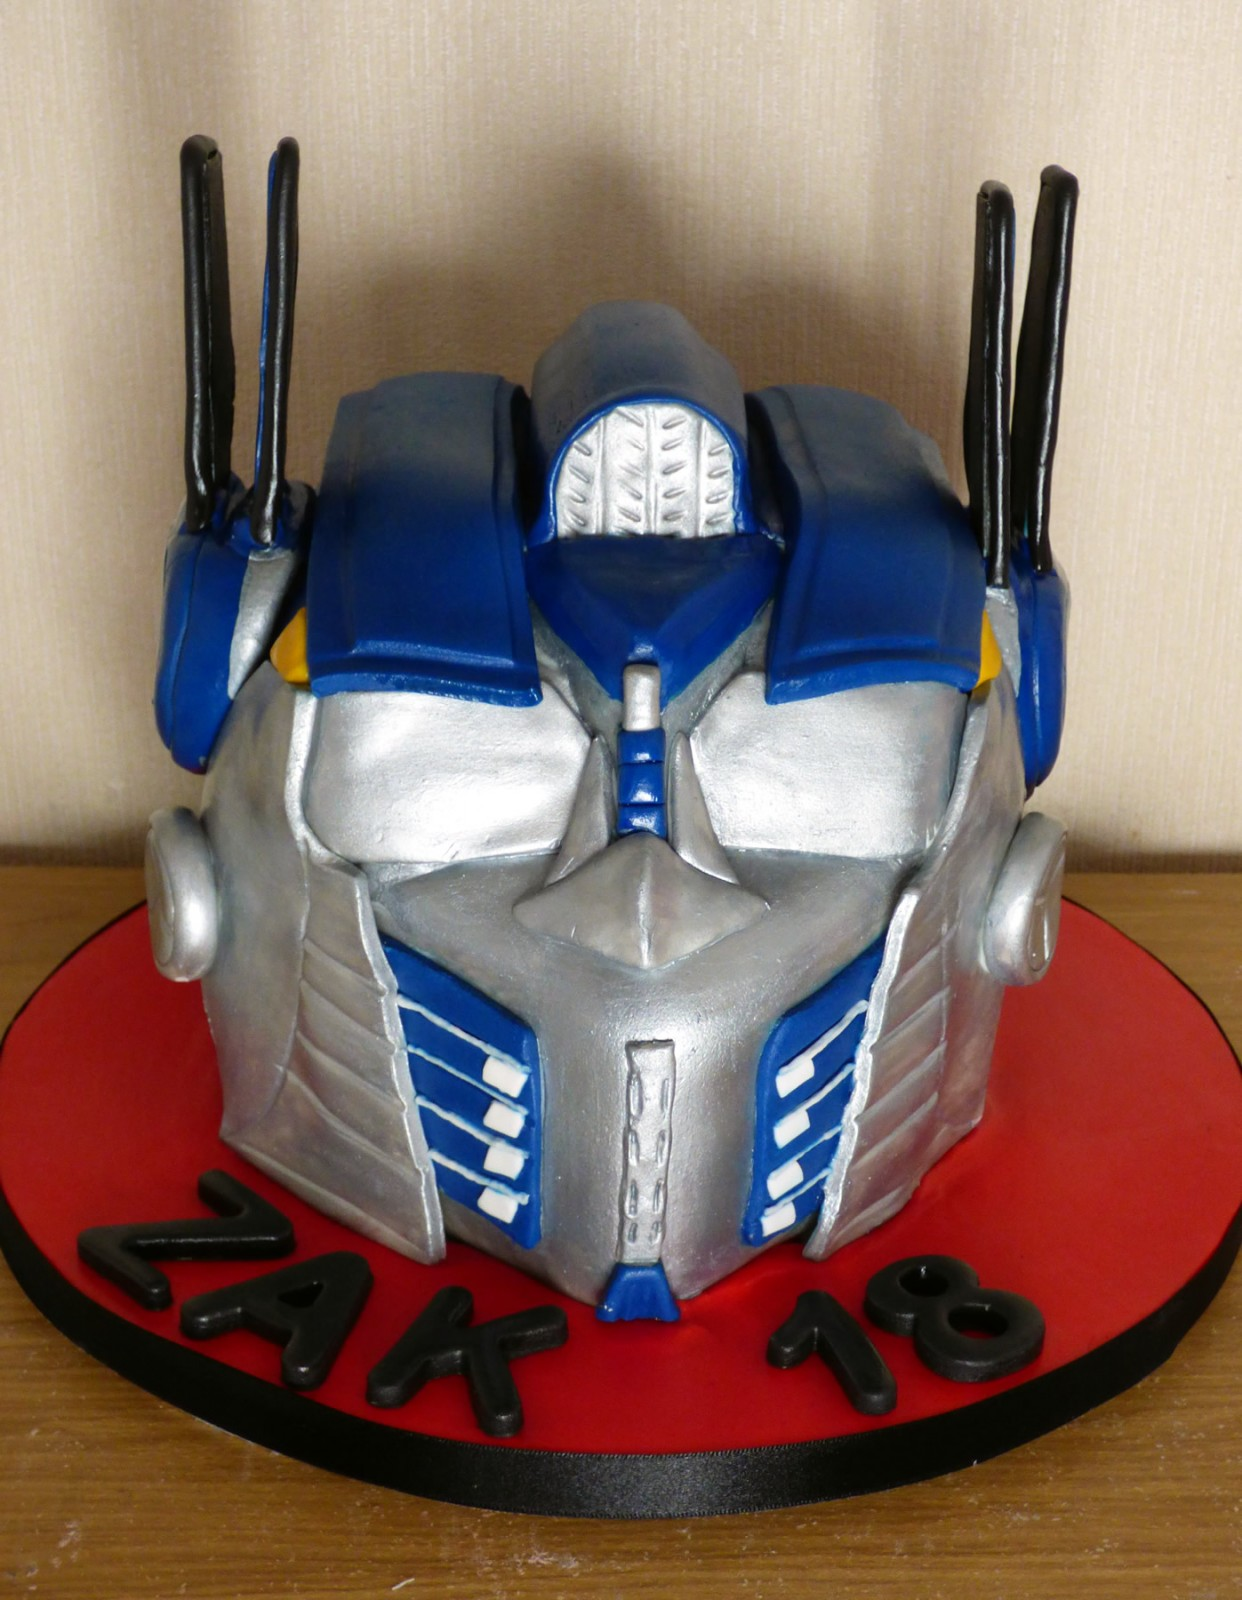 Enjoyable Optimus Transformer Birthday Cake Susies Cakes Funny Birthday Cards Online Elaedamsfinfo